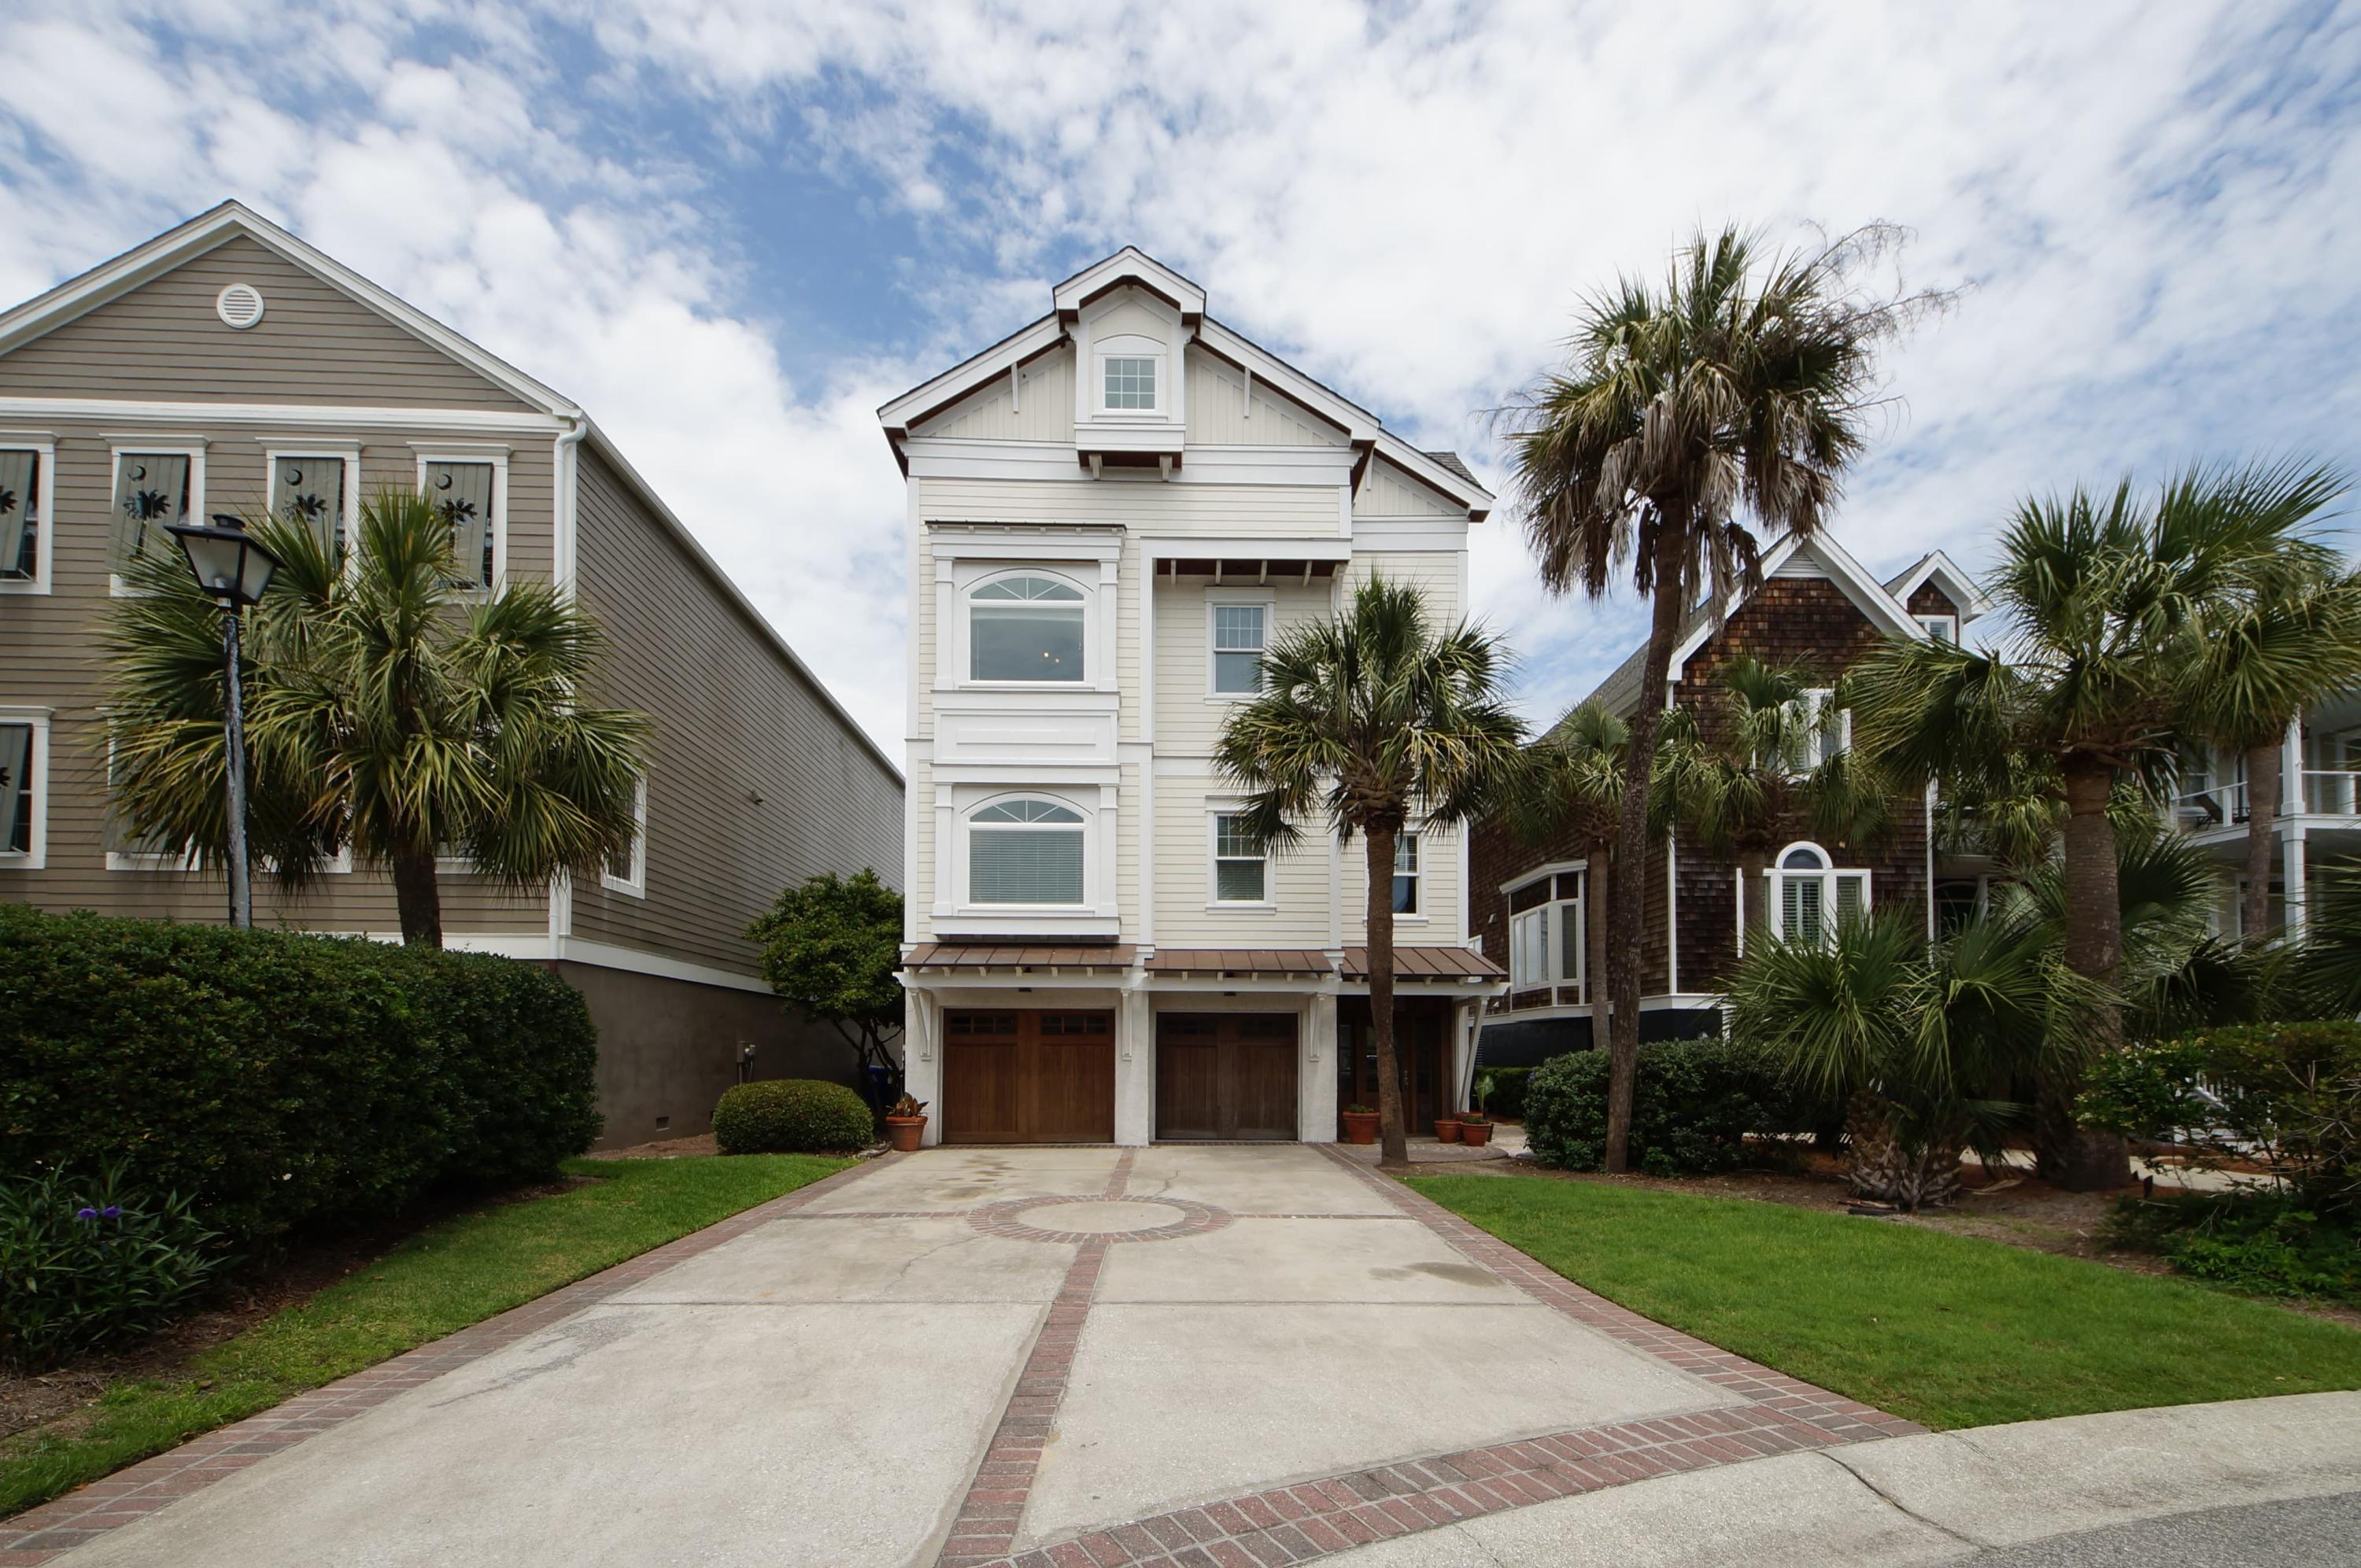 Wild Dunes Homes For Sale - 50 Morgan, Isle of Palms, SC - 30